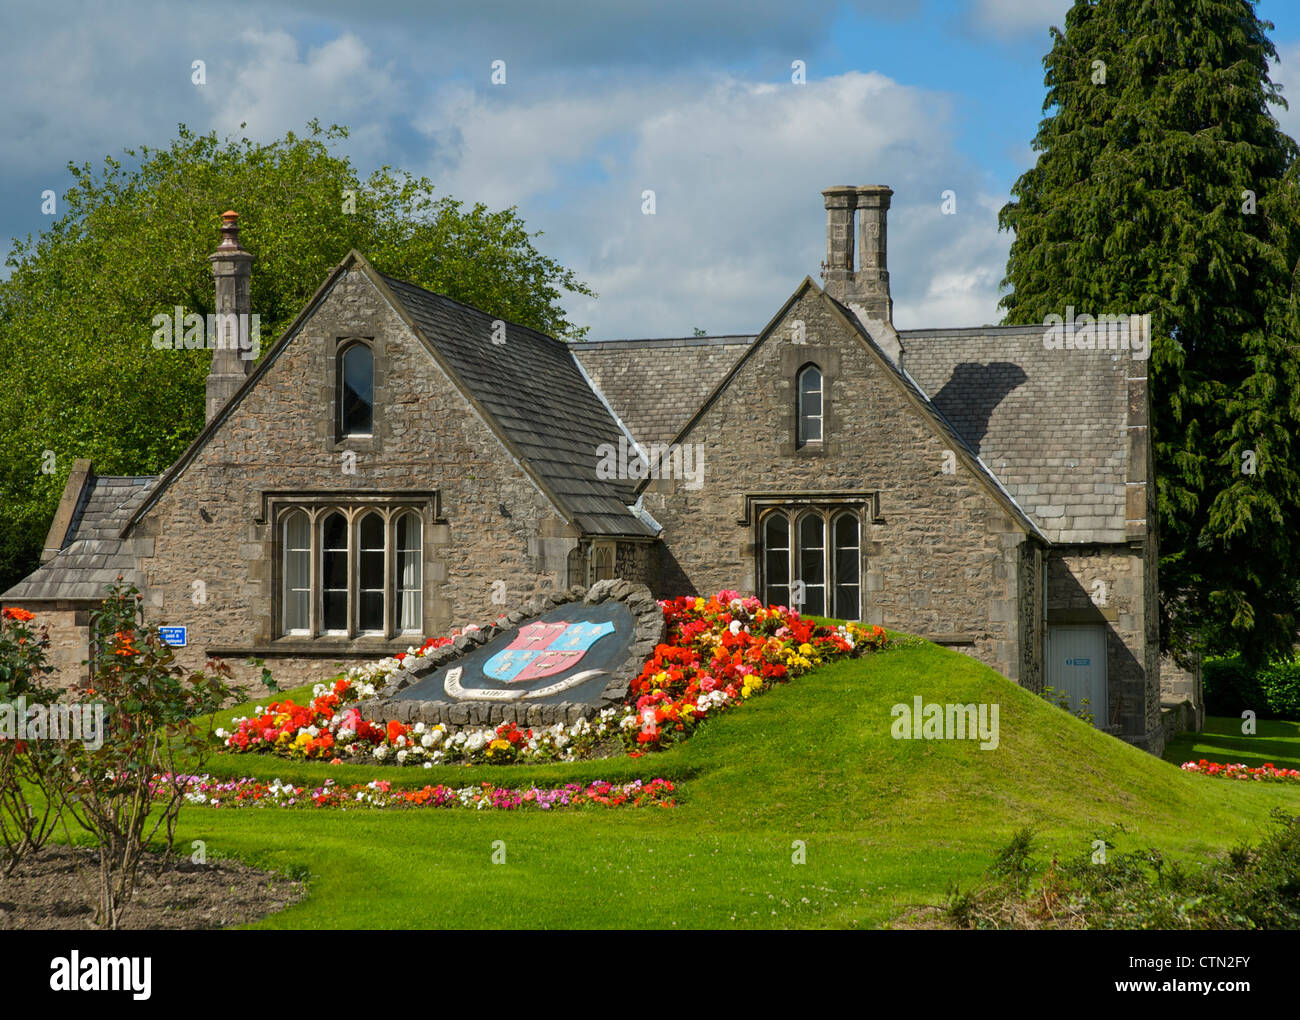 Town coat of arms, surrounded by flowers, Kirkland, Kendal, Cumbria, England UK - Stock Image